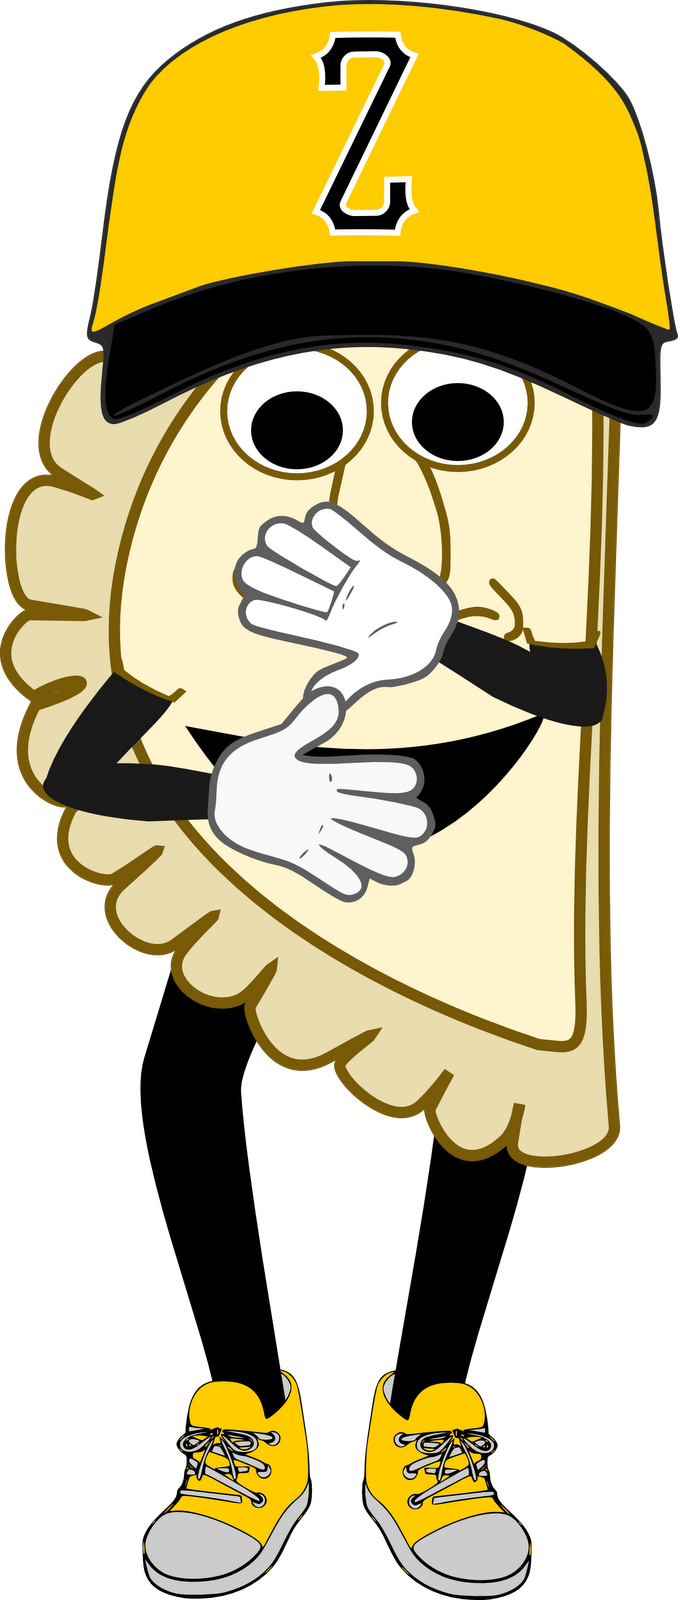 Clipart of pittsburgh pirates baseball players jpg stock The Classy Yinzer: The Pittsburgh Pirates, The Zoltan Hand Signal ... jpg stock